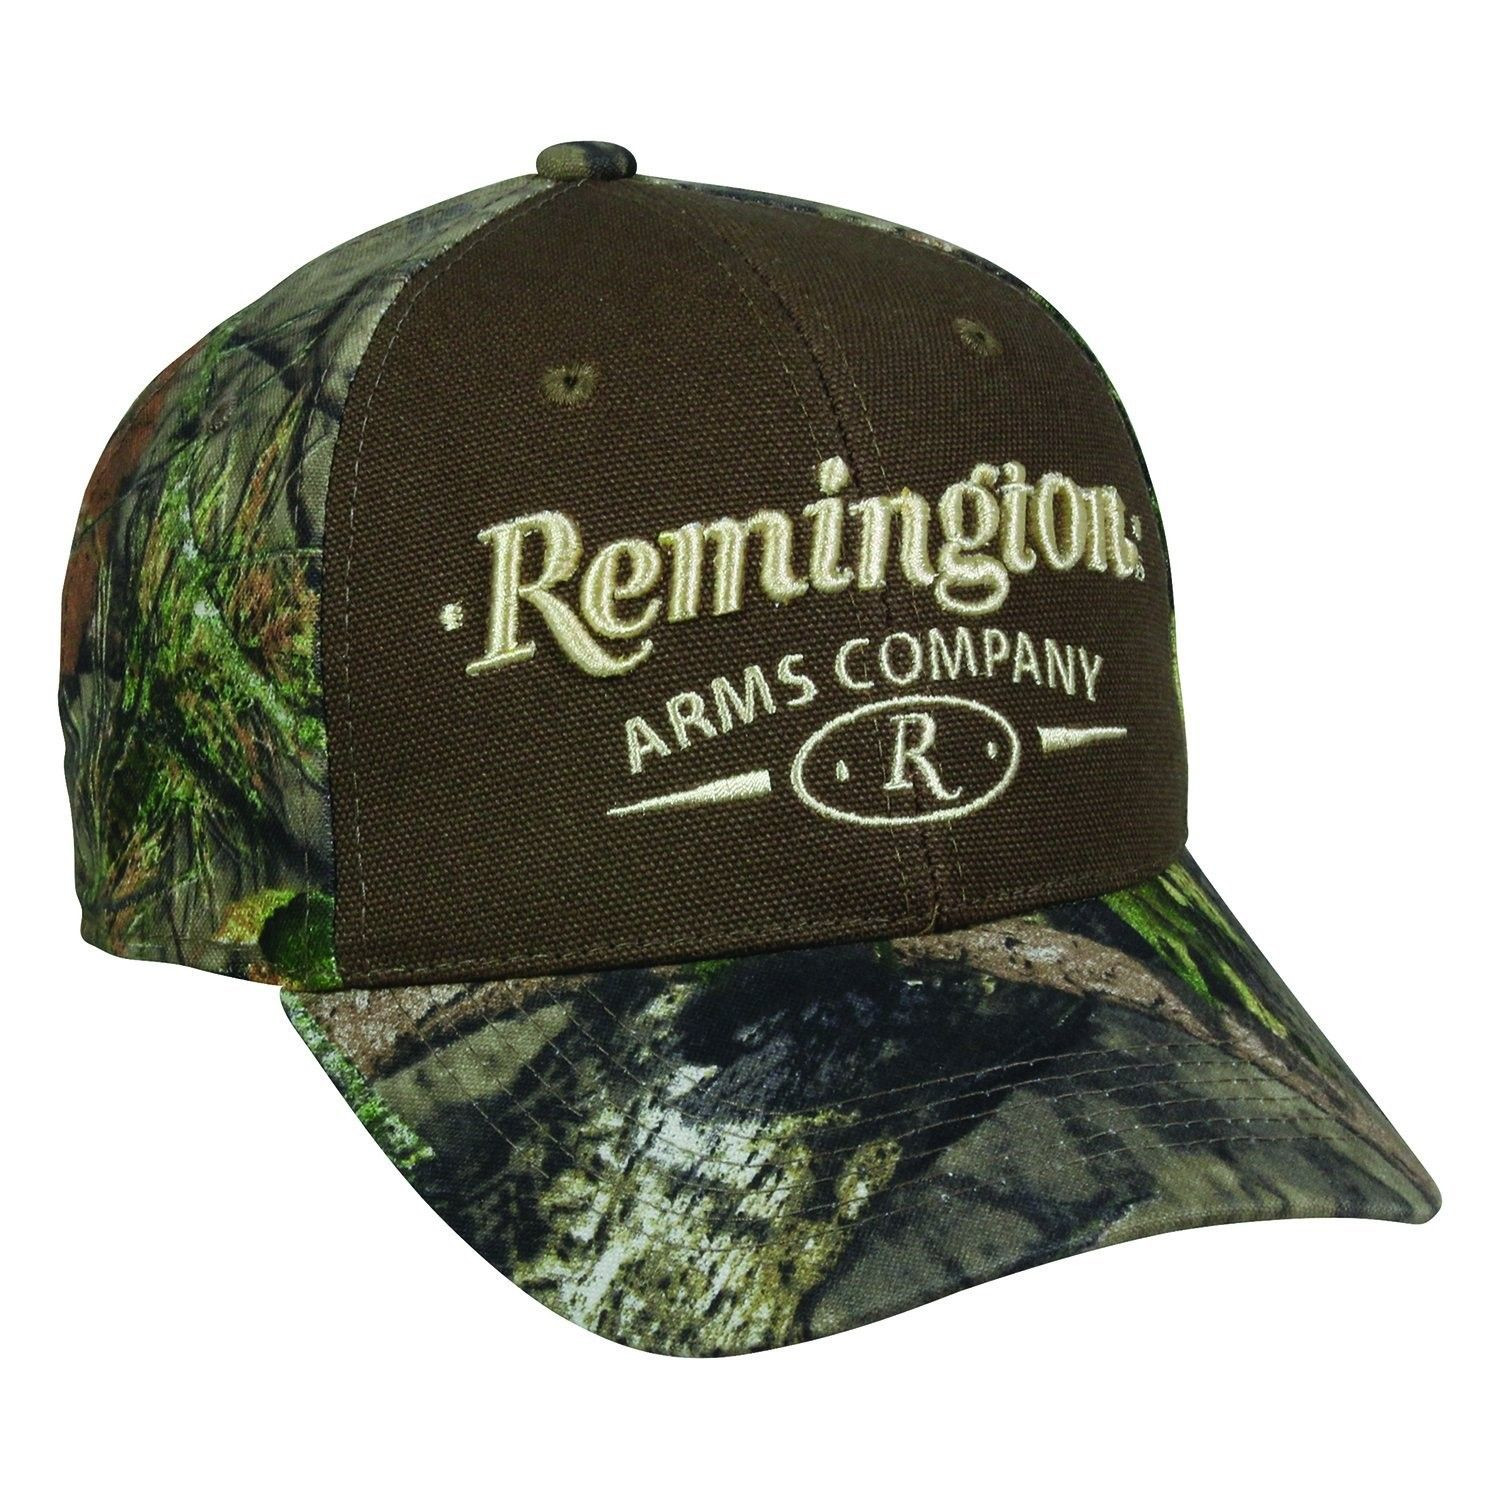 7358eb17d5890 Remington Arms Company Mossy Oak Break Up Country Brown and Tan Camo Cap Hat  158- One Size Fits Most - CD17Z6MUSQD - Hats   Caps